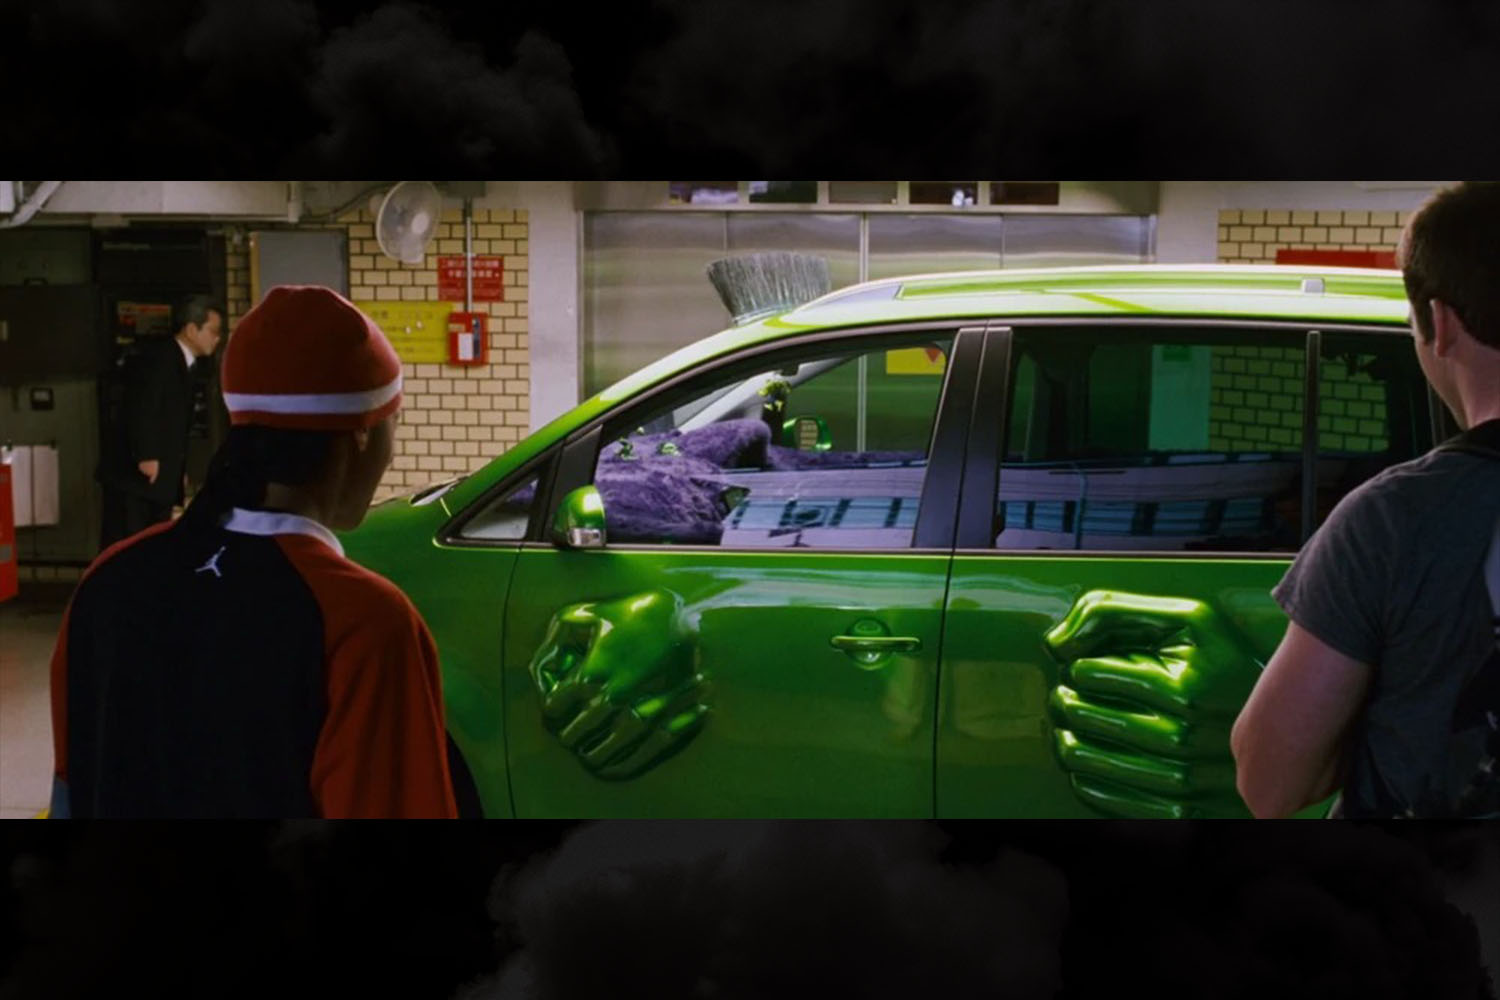 Hulk fists smashing through the doors of the mean green 2005 Volkswagen Touran owned by Twinkie (Bow Wow) in The Fast and the Furious: Tokyo Drift